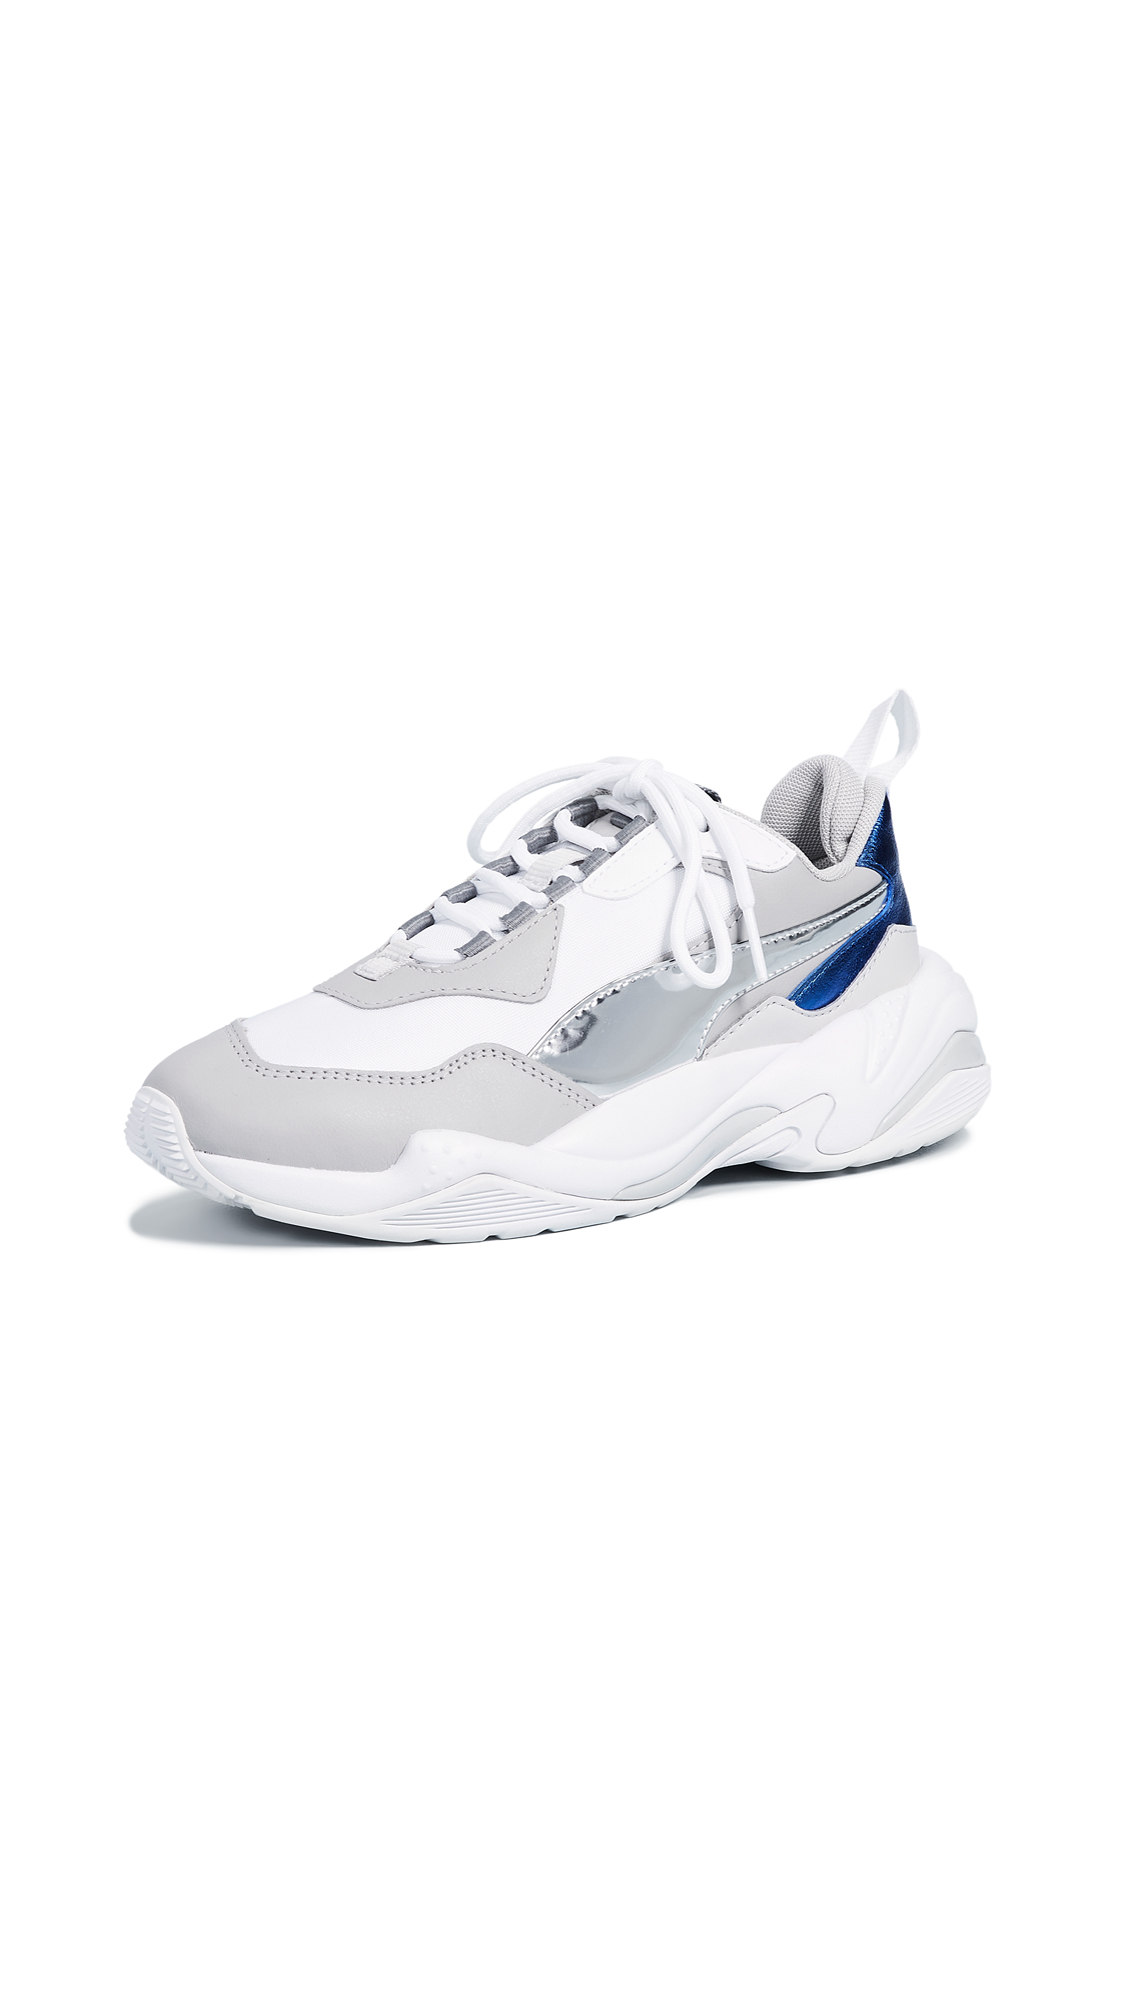 PUMA Thunder Electric Sneakers - Puma White/Grey Violet/White